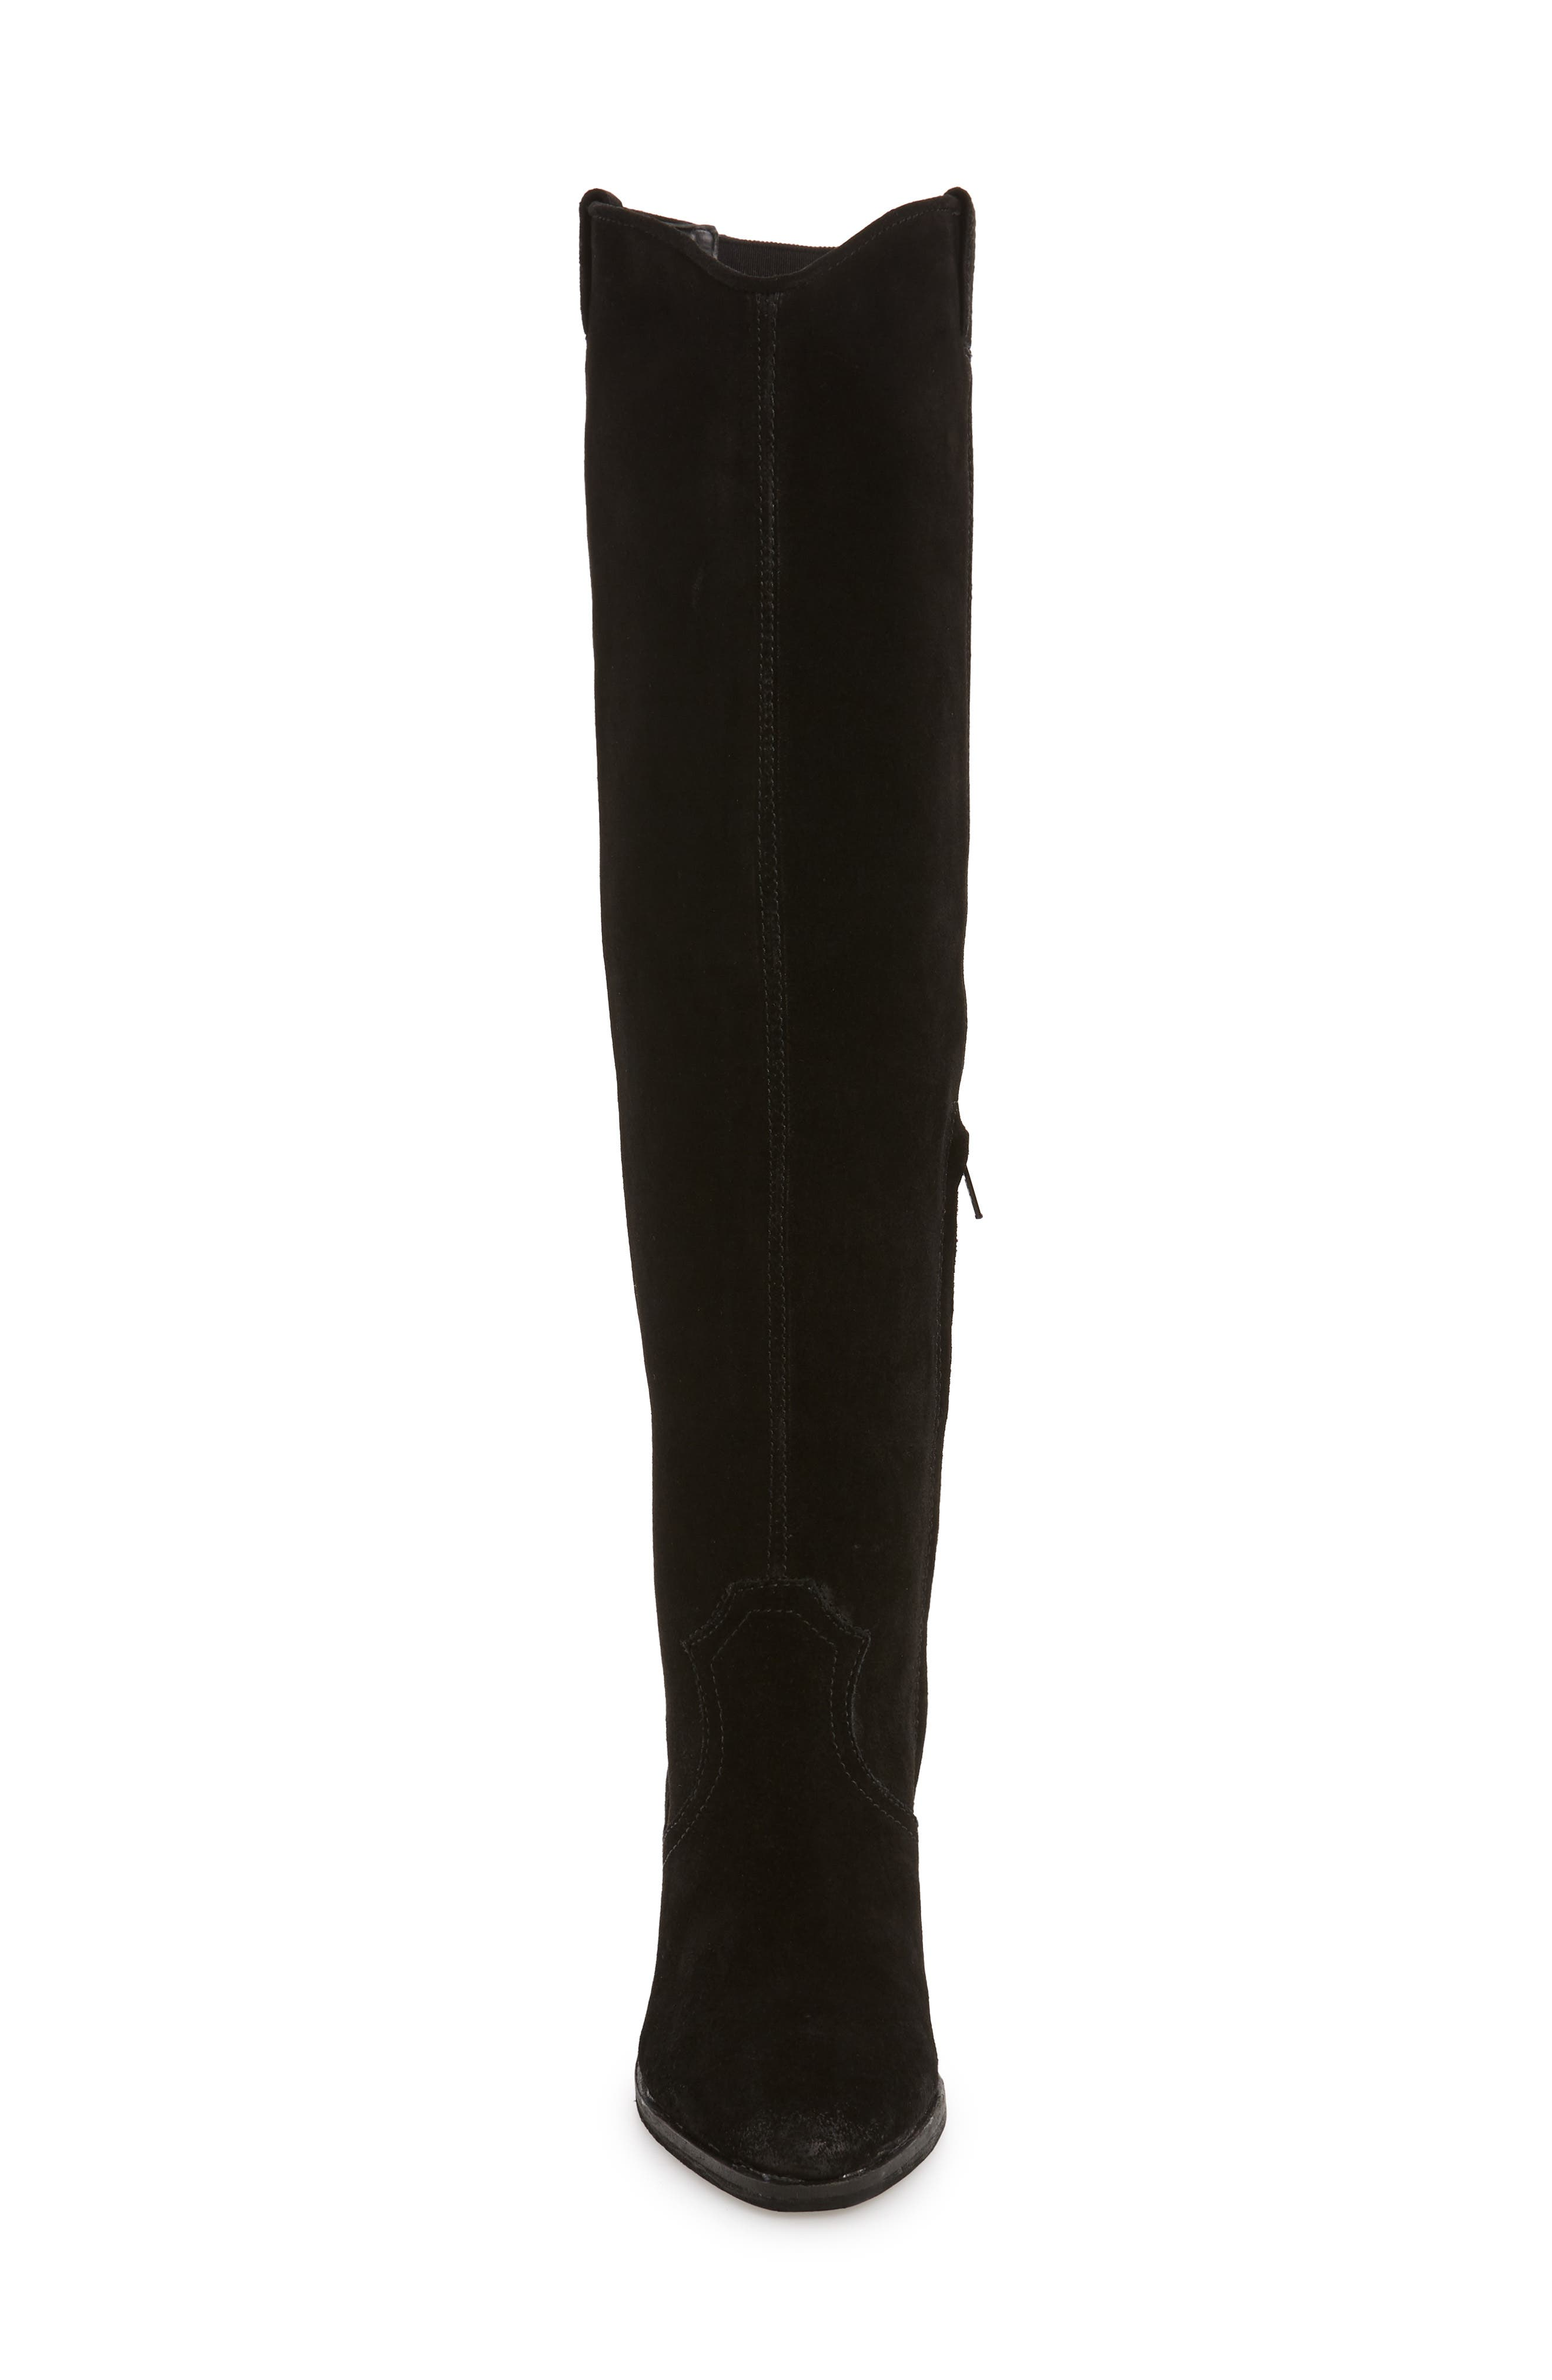 Delano Over the Knee Boot,                             Alternate thumbnail 4, color,                             BLACK LEATHER